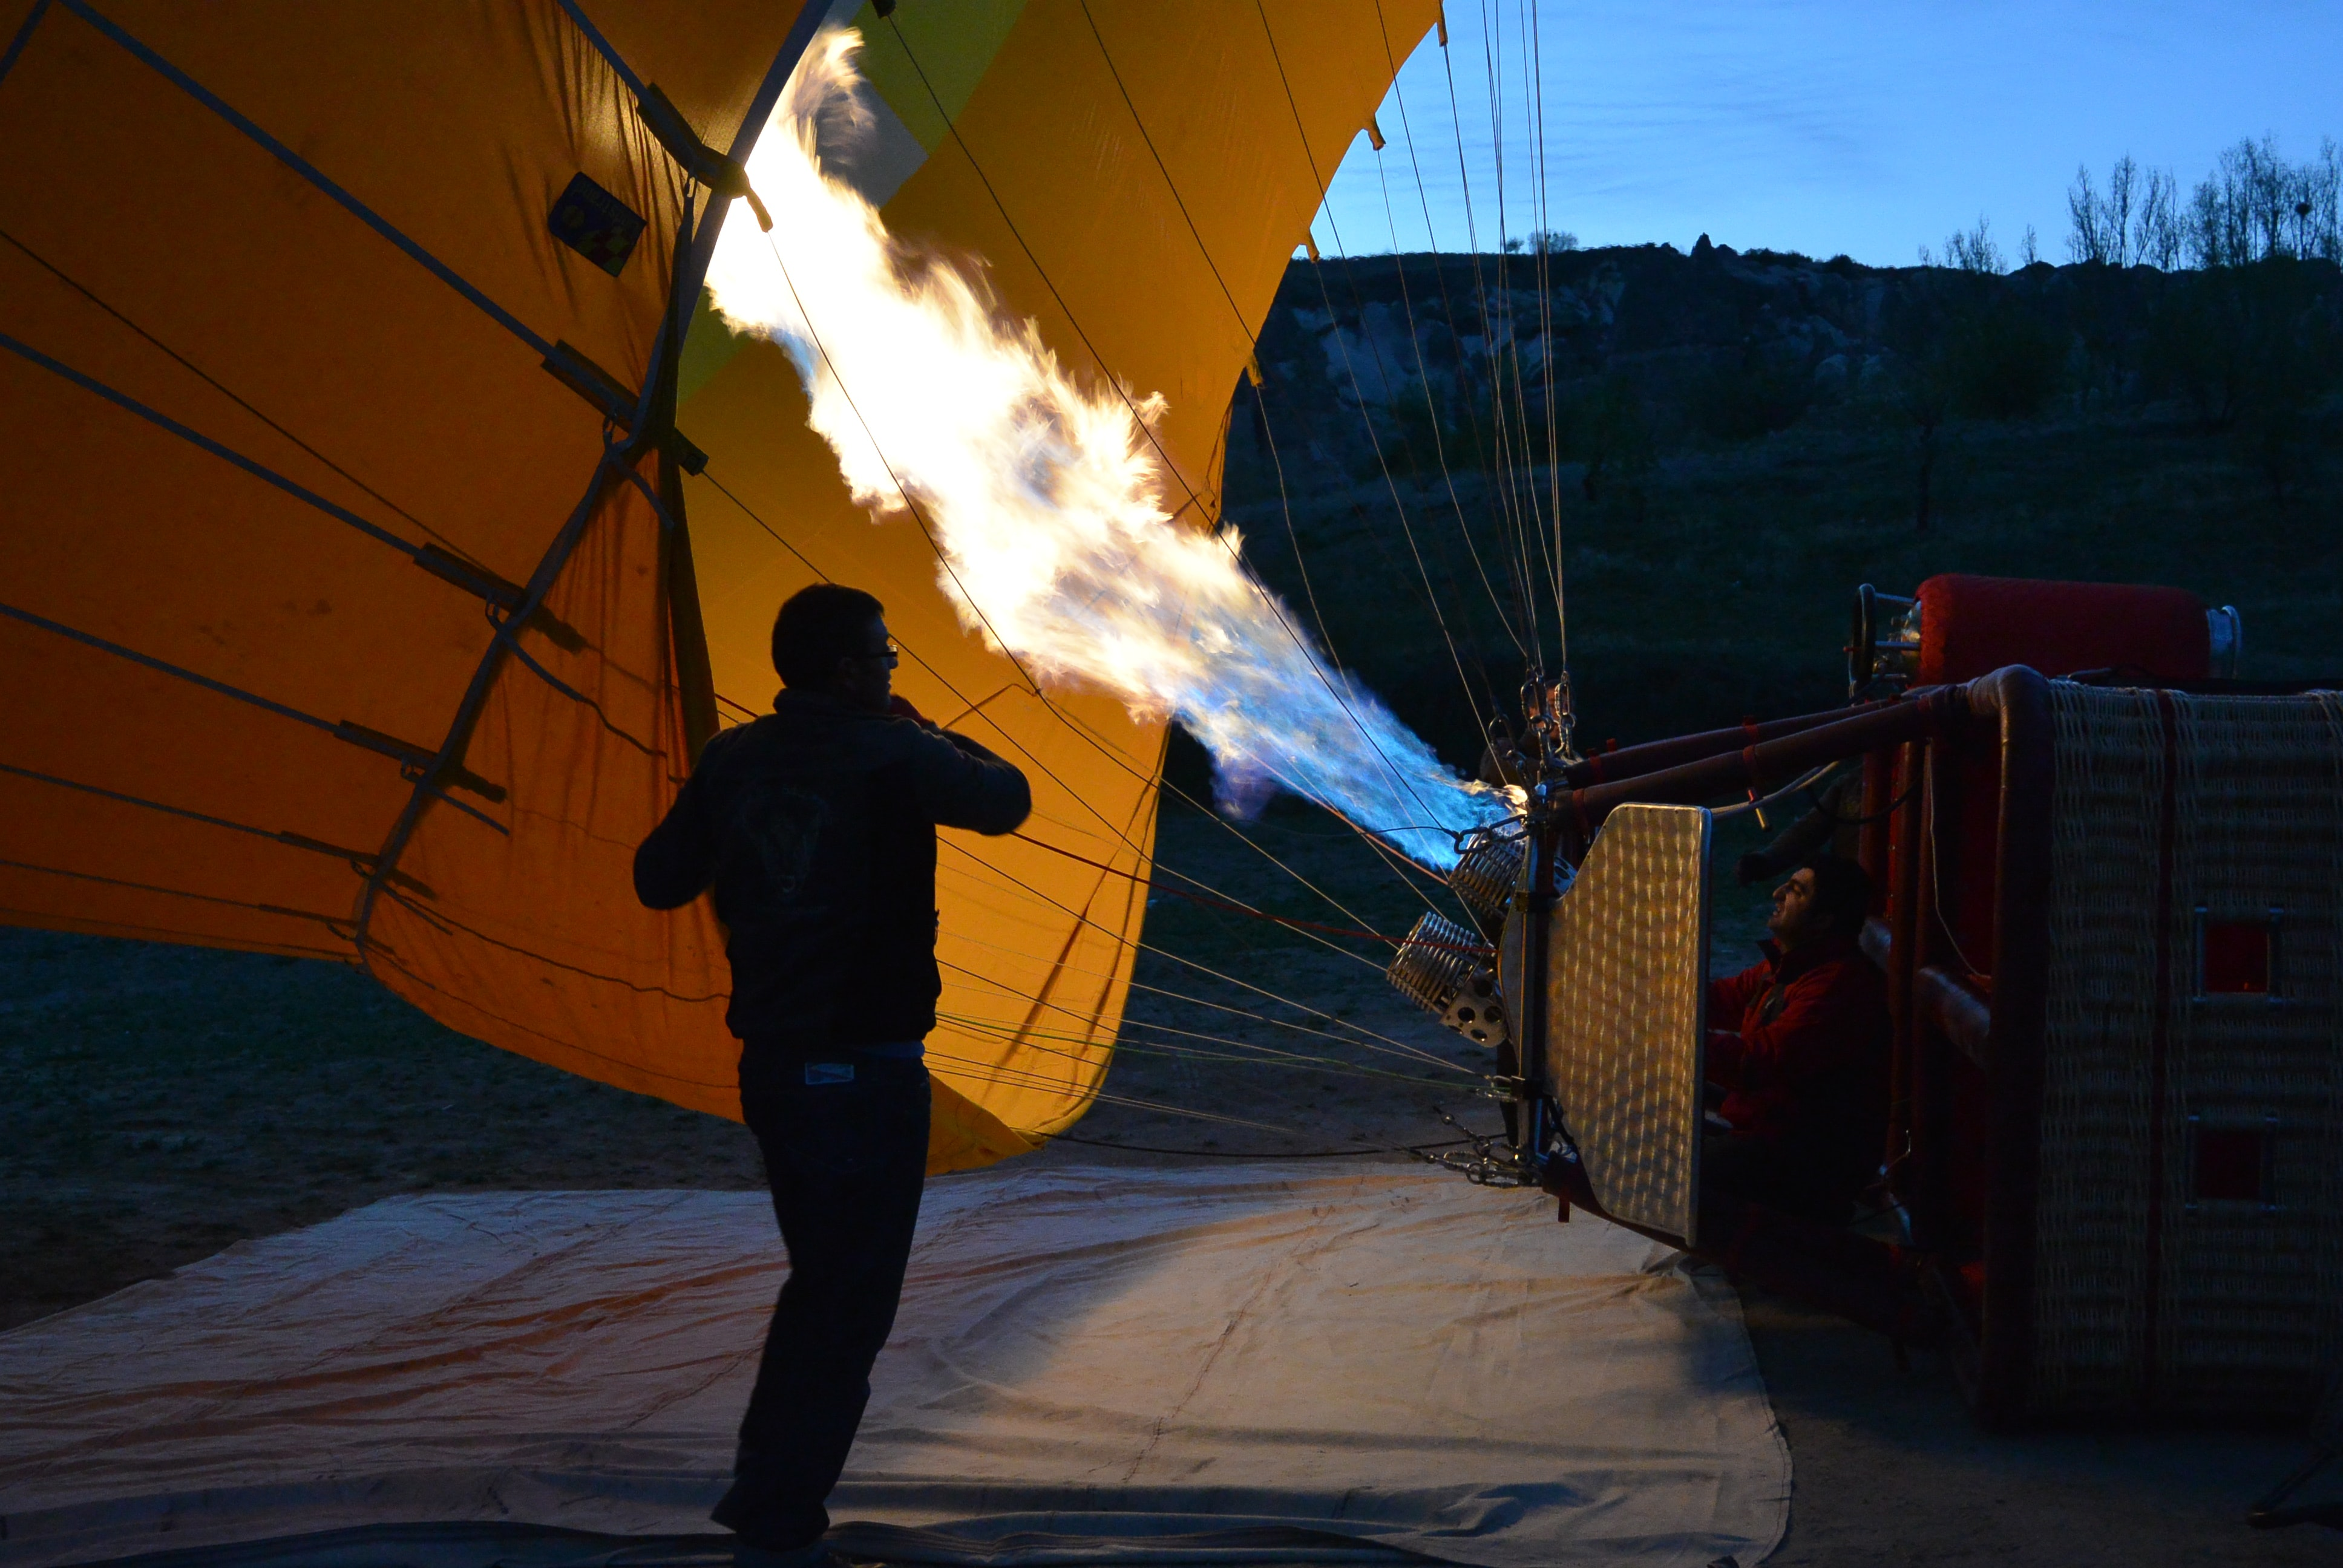 man in front of hot air balloon